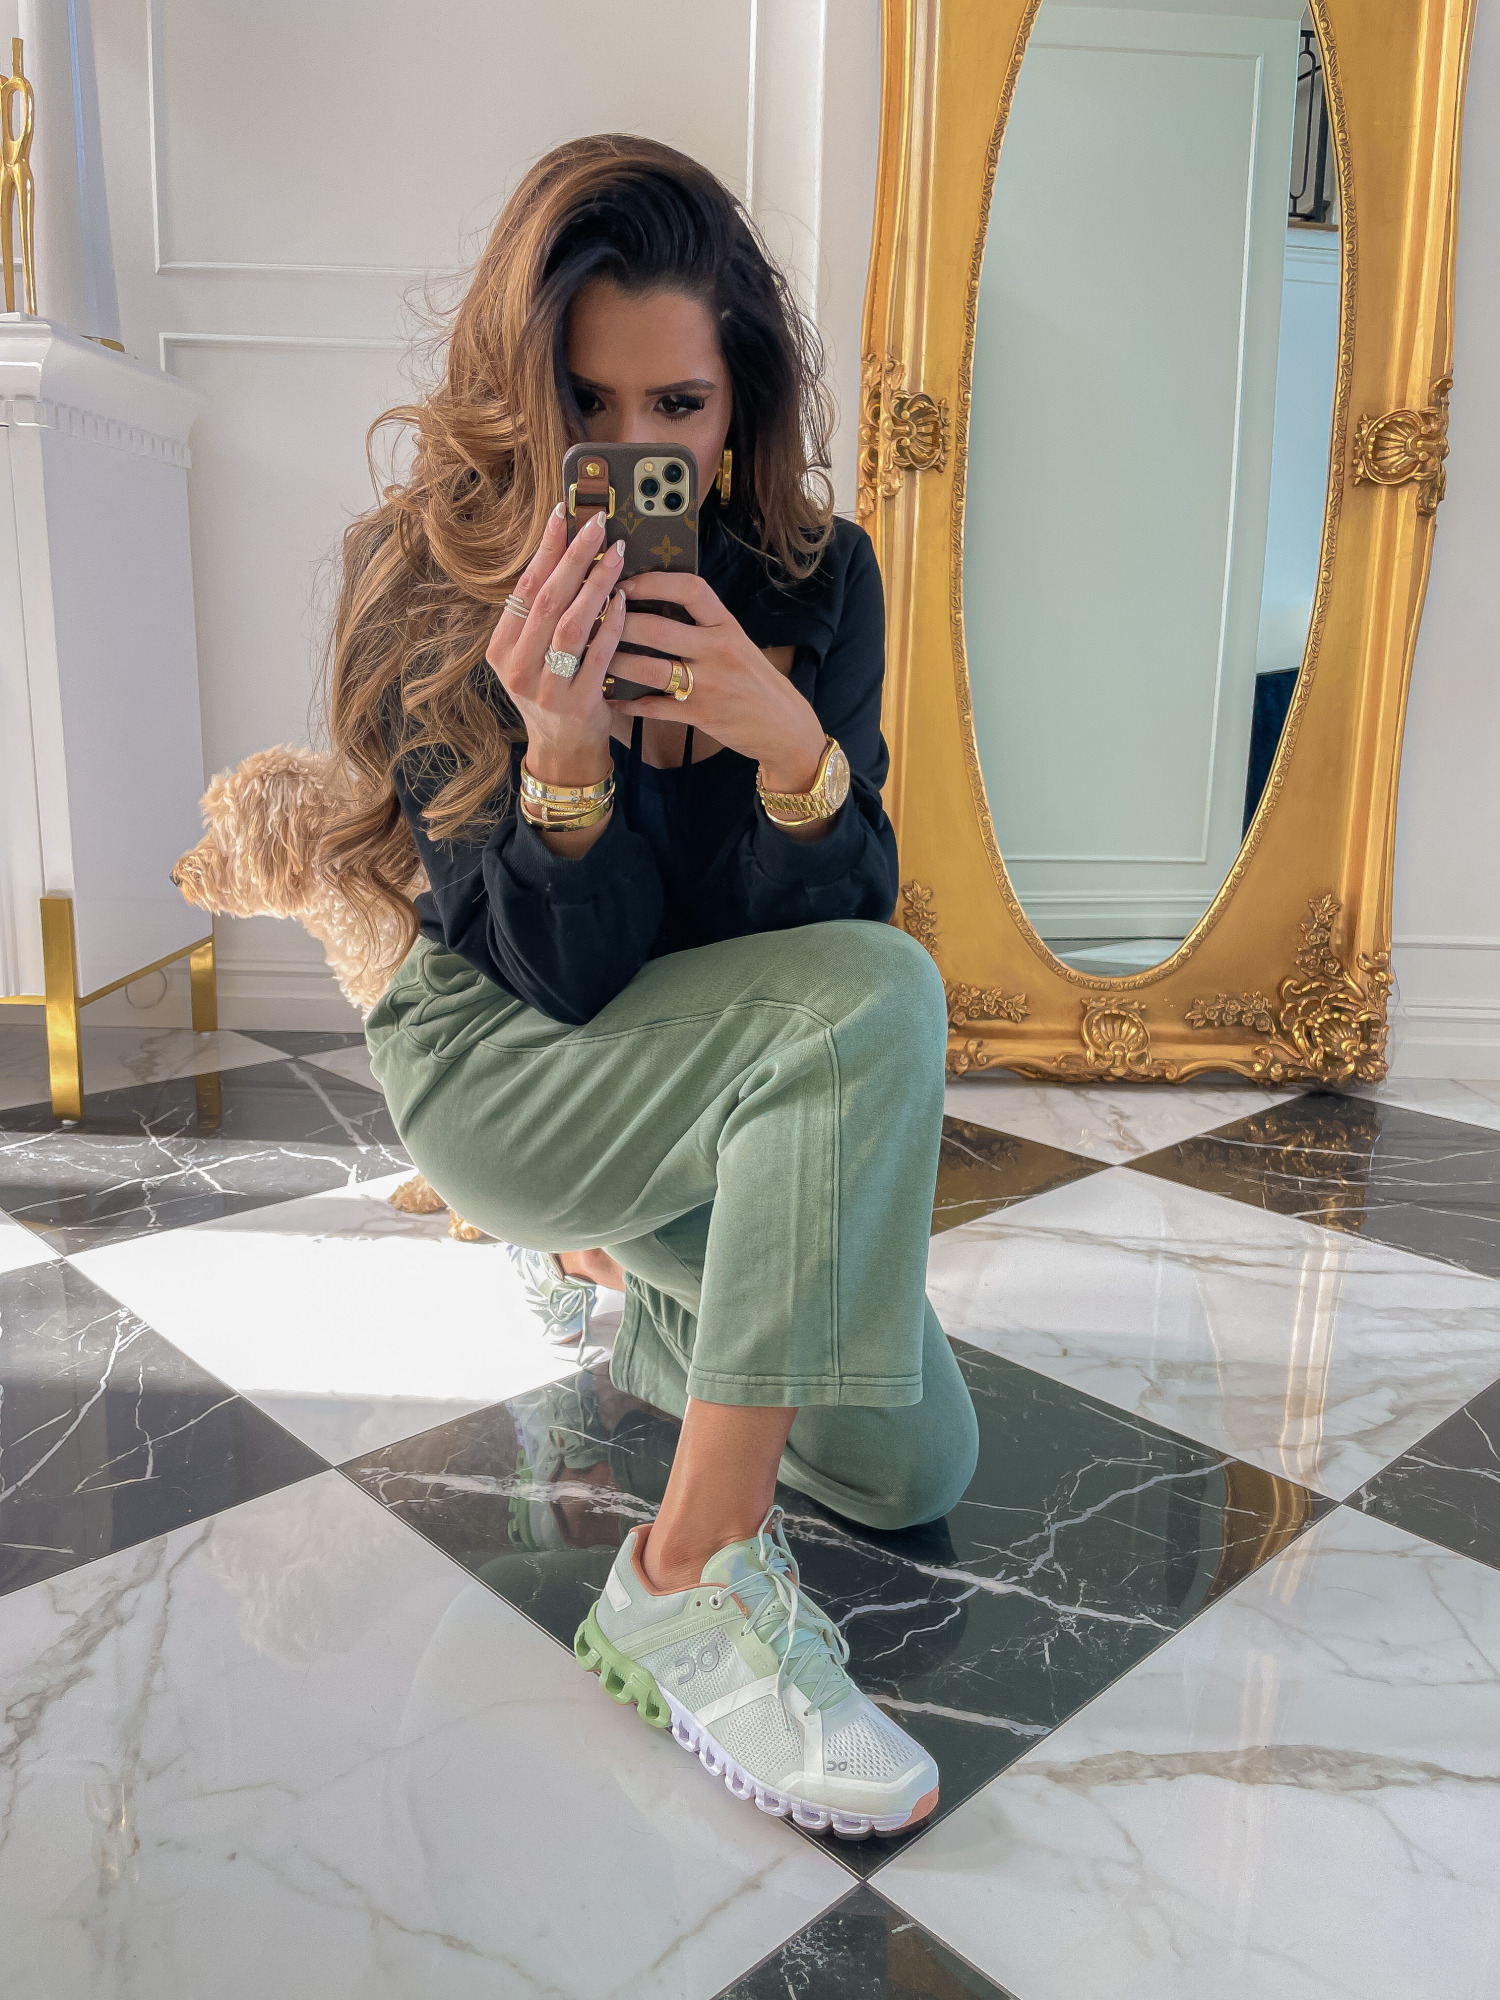 dstrom Anniversary Sale 2021 Picks, best of NSALE 2021, Nordstrom sale on cloud shoes reivew, Emily gemma | Nordstrom Anniversary Sale US fashion blog, The Sweetest Thing: image of Emily Gemma wearing a Nordstrom peekaboo hoodie, drawstring pants, and athletic sneakers.